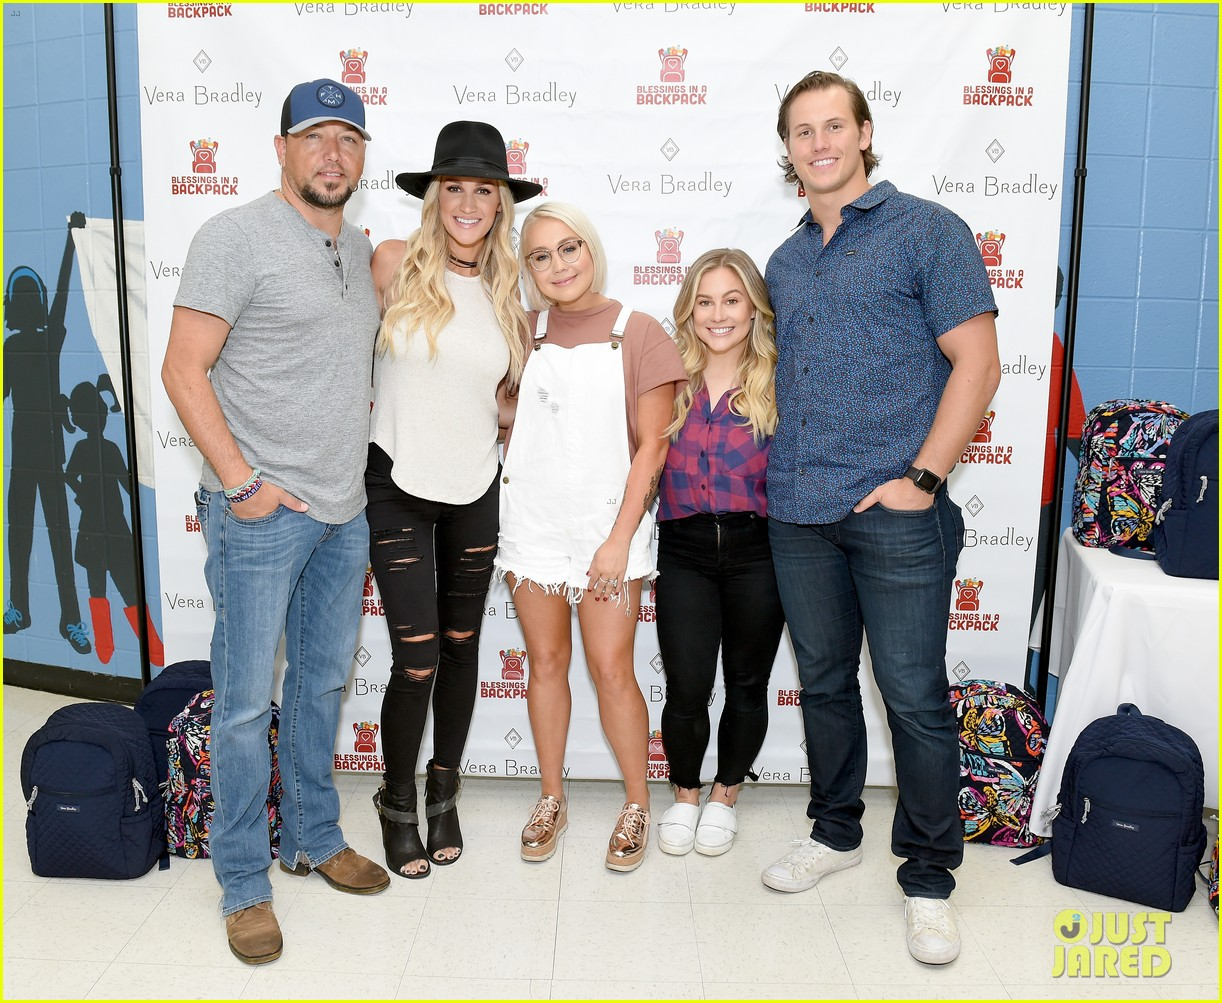 jason aldean and brittany host vera bradley x blessings in a backpack event 02